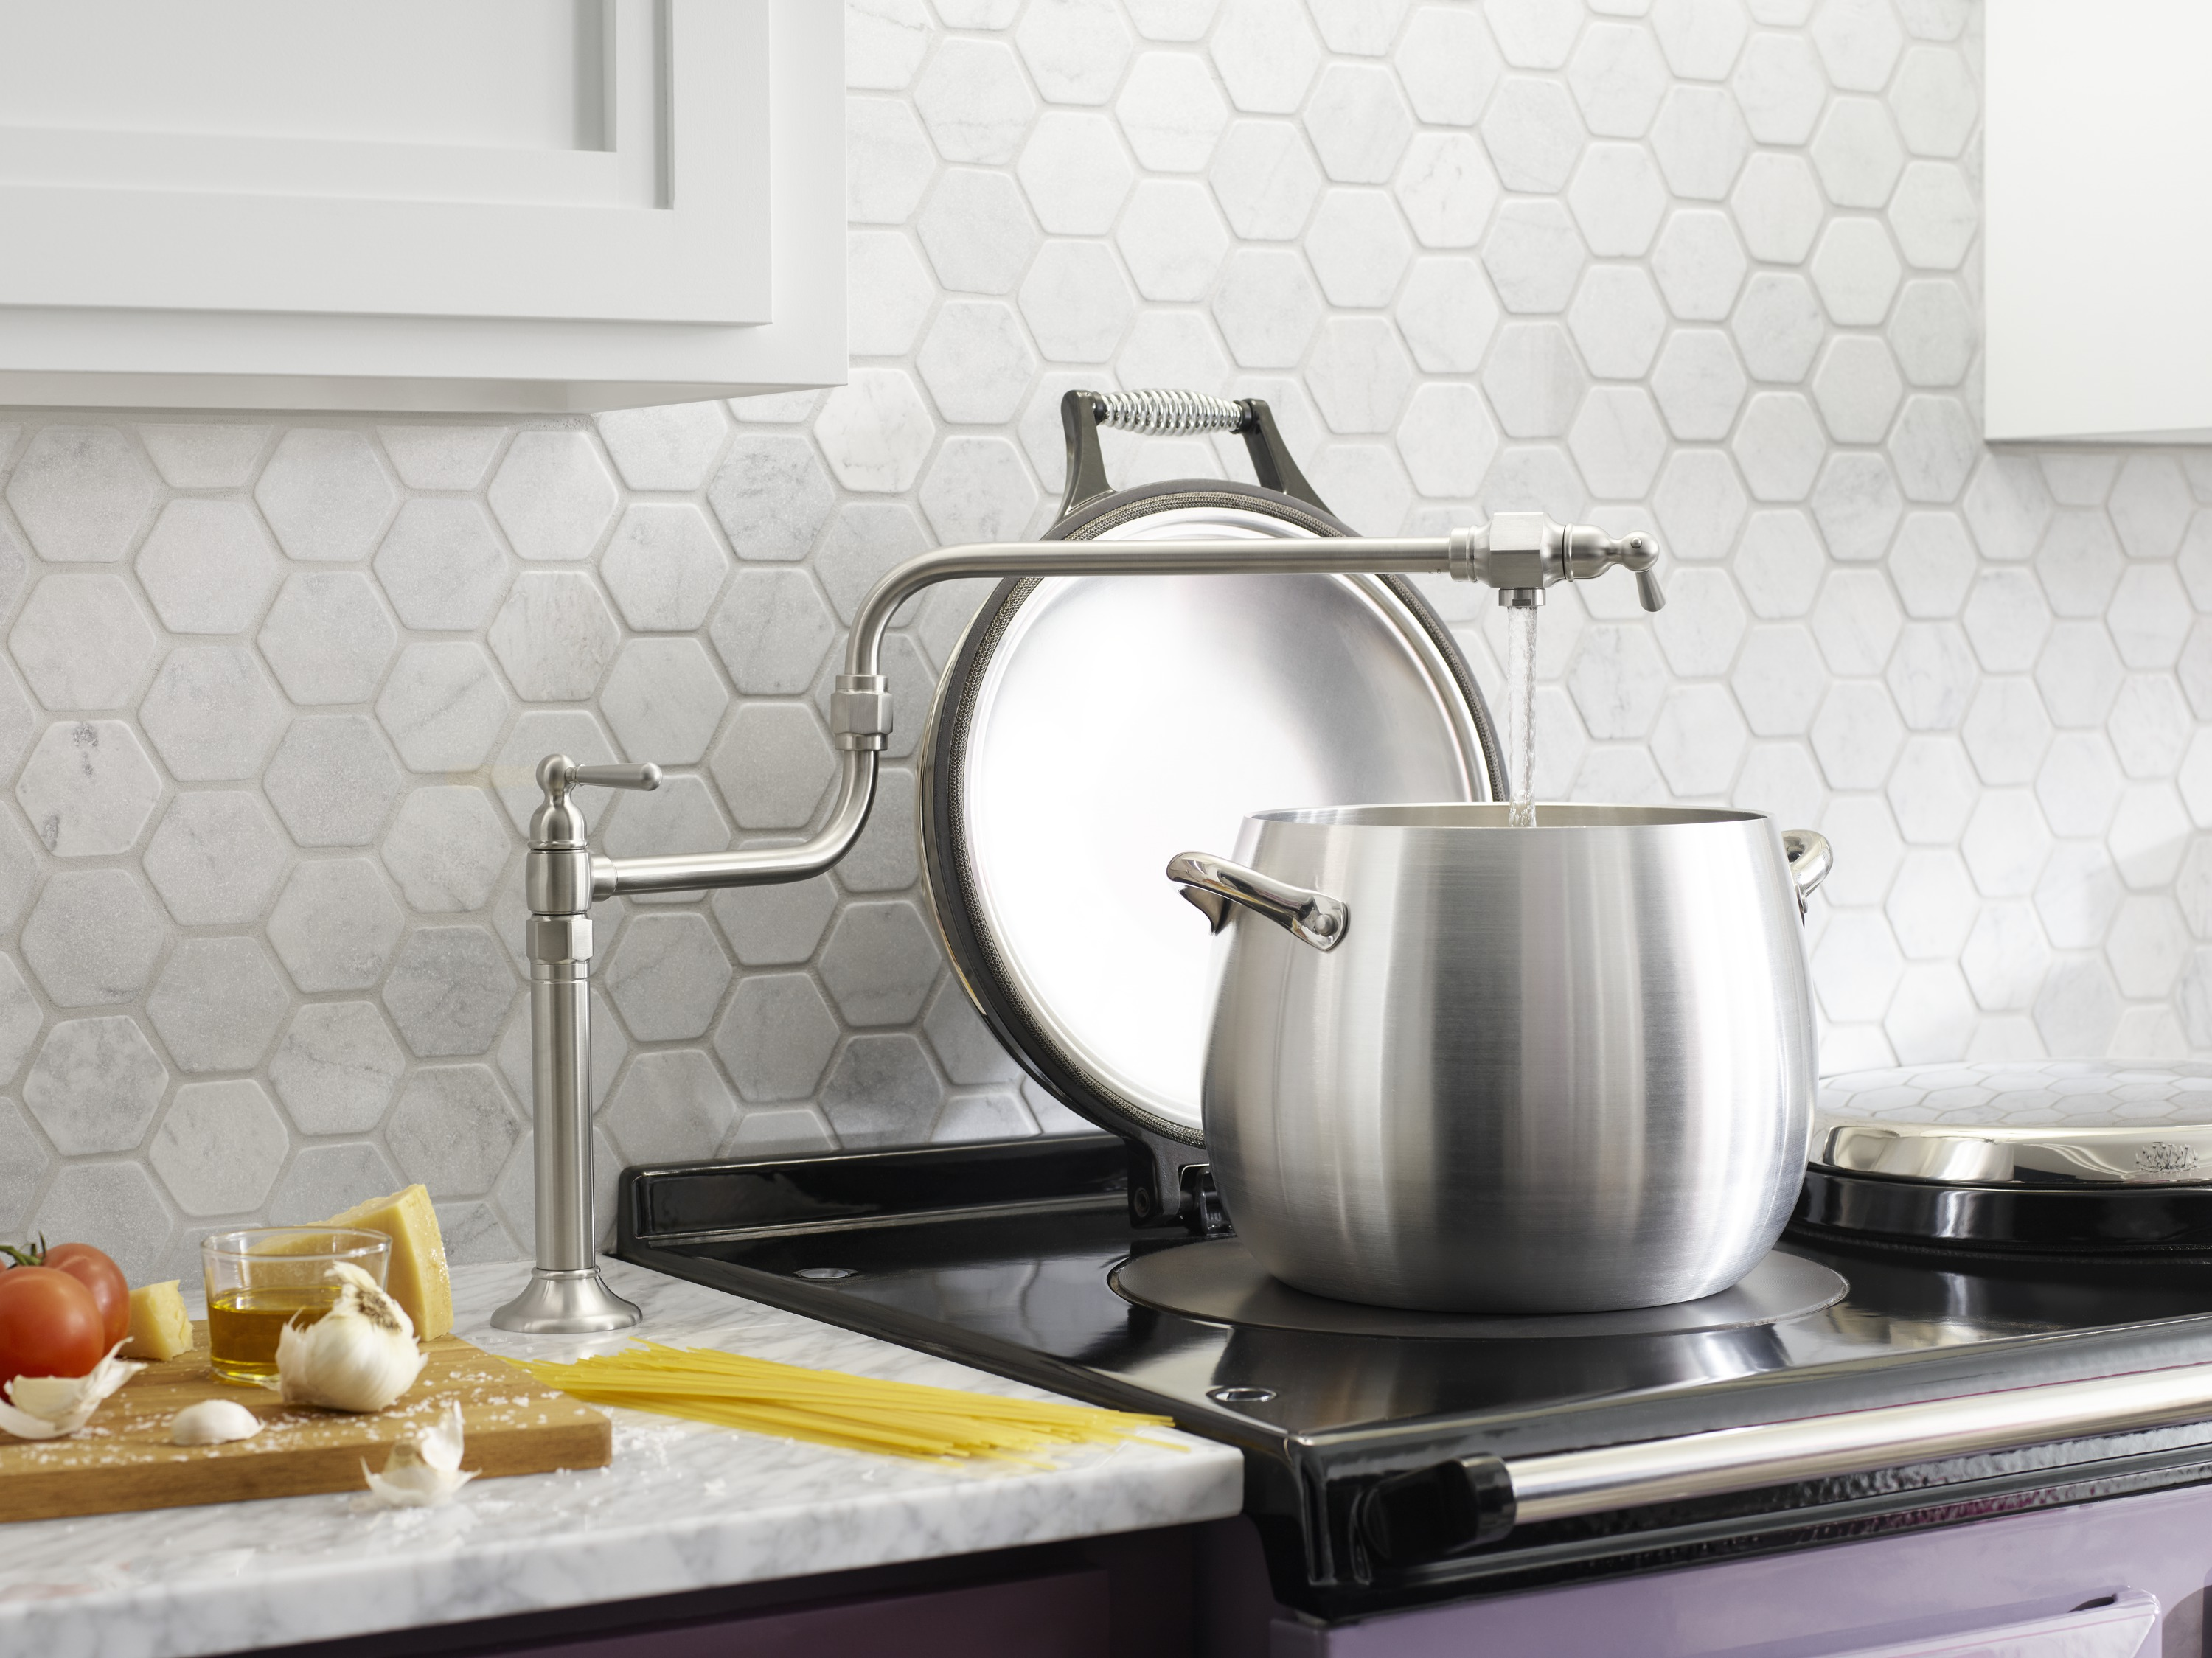 HiRise™ pot filler     A pot filler mounted on the counter can be used to easily fill pots, coffee makers, vases and more.